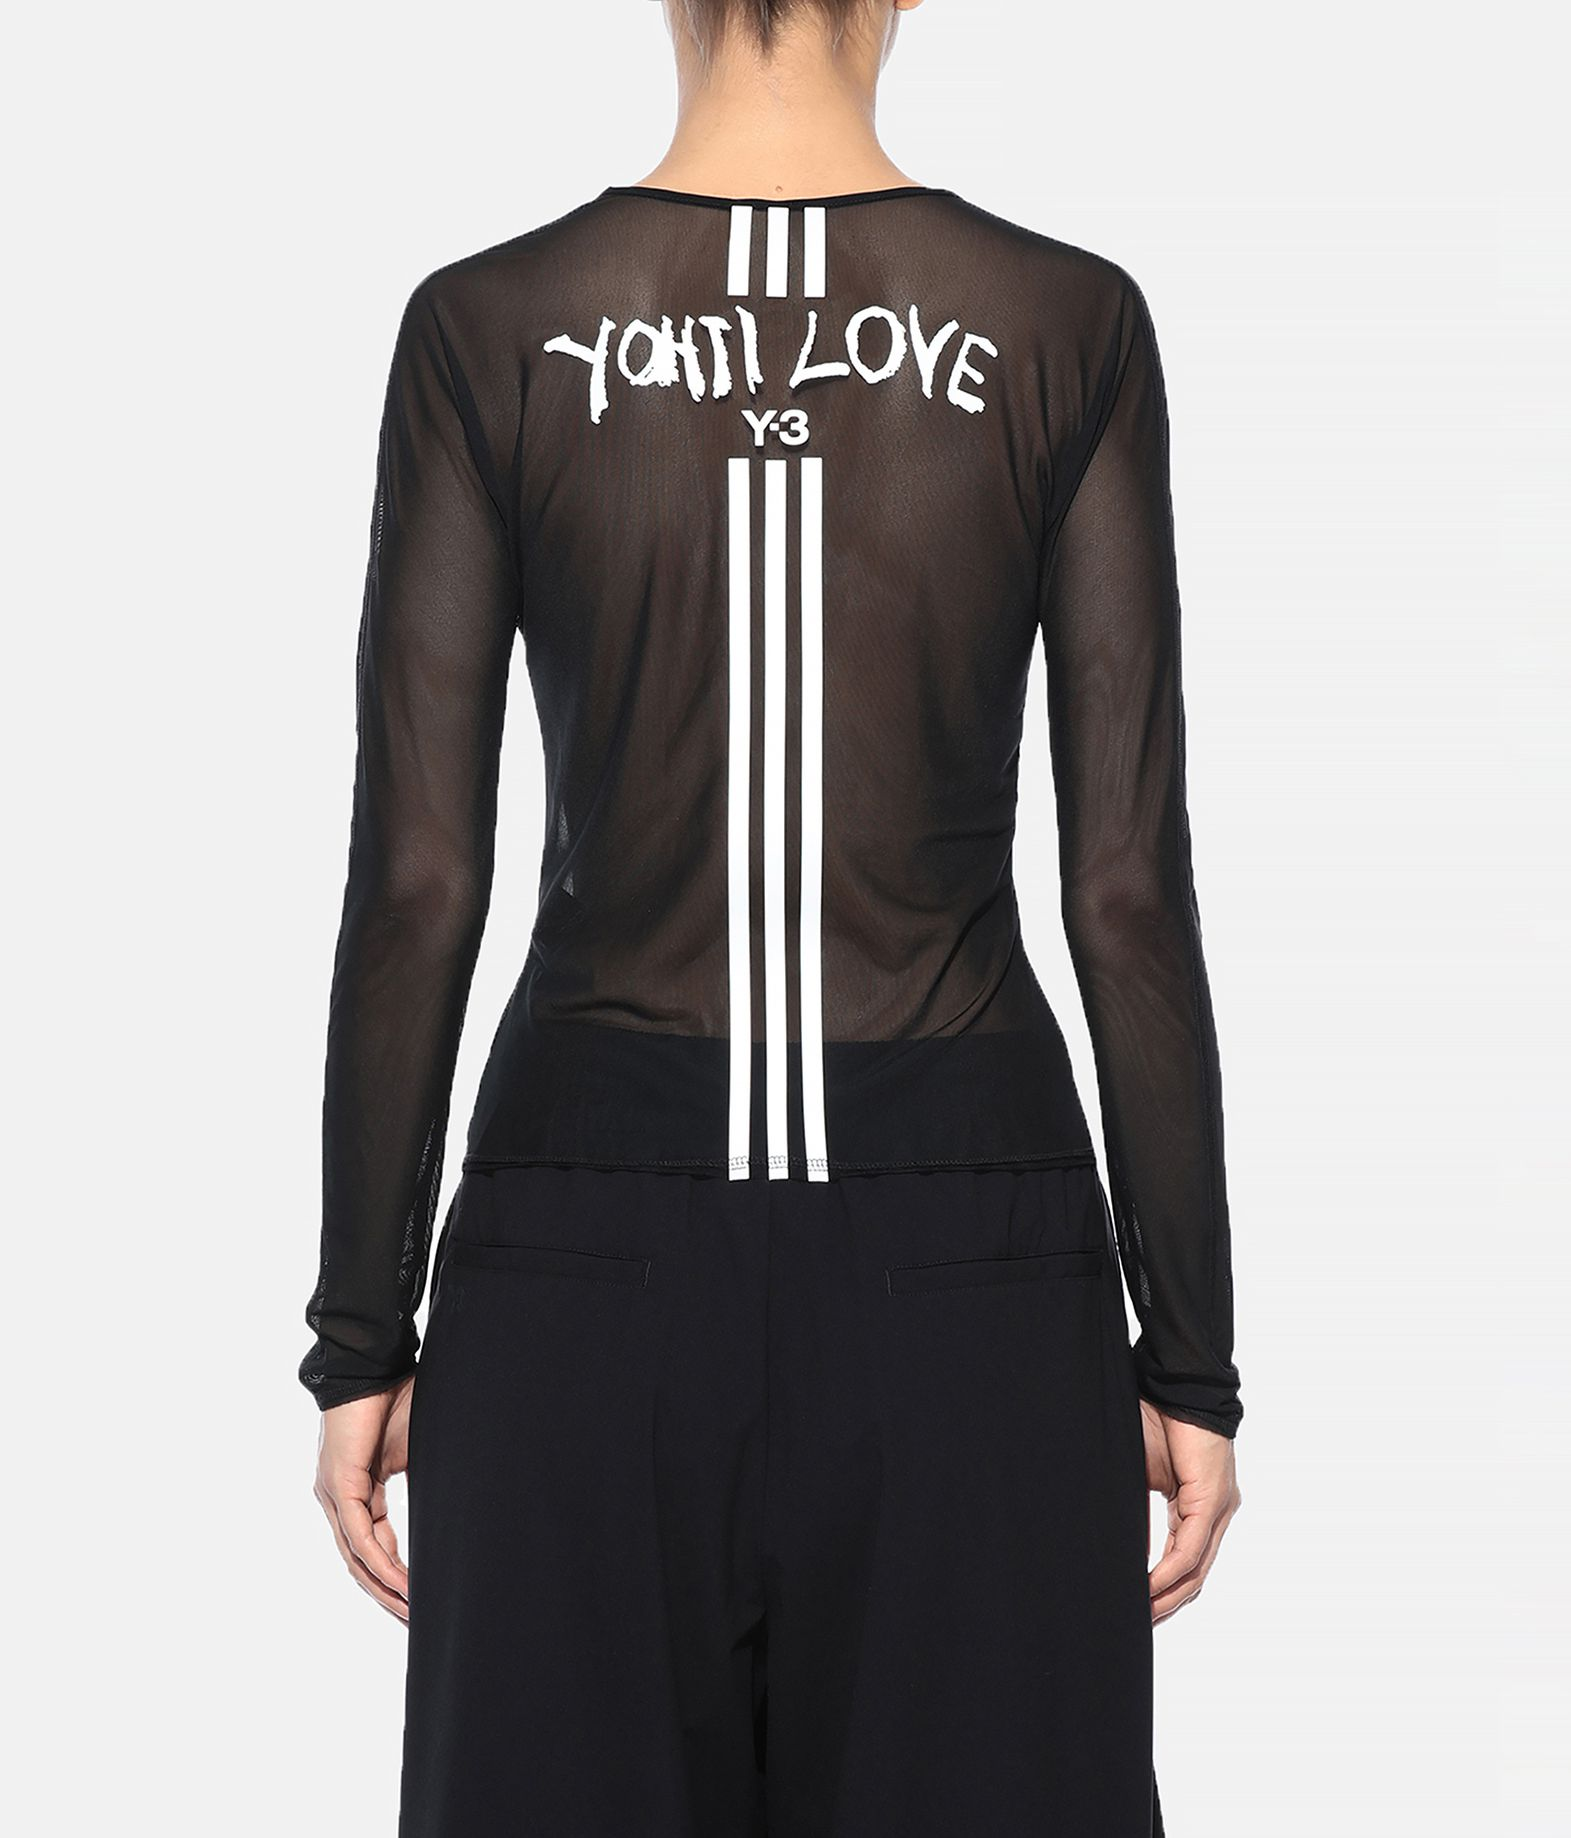 Y-3 Y-3 Yohji Love Mesh Tee Top Woman d